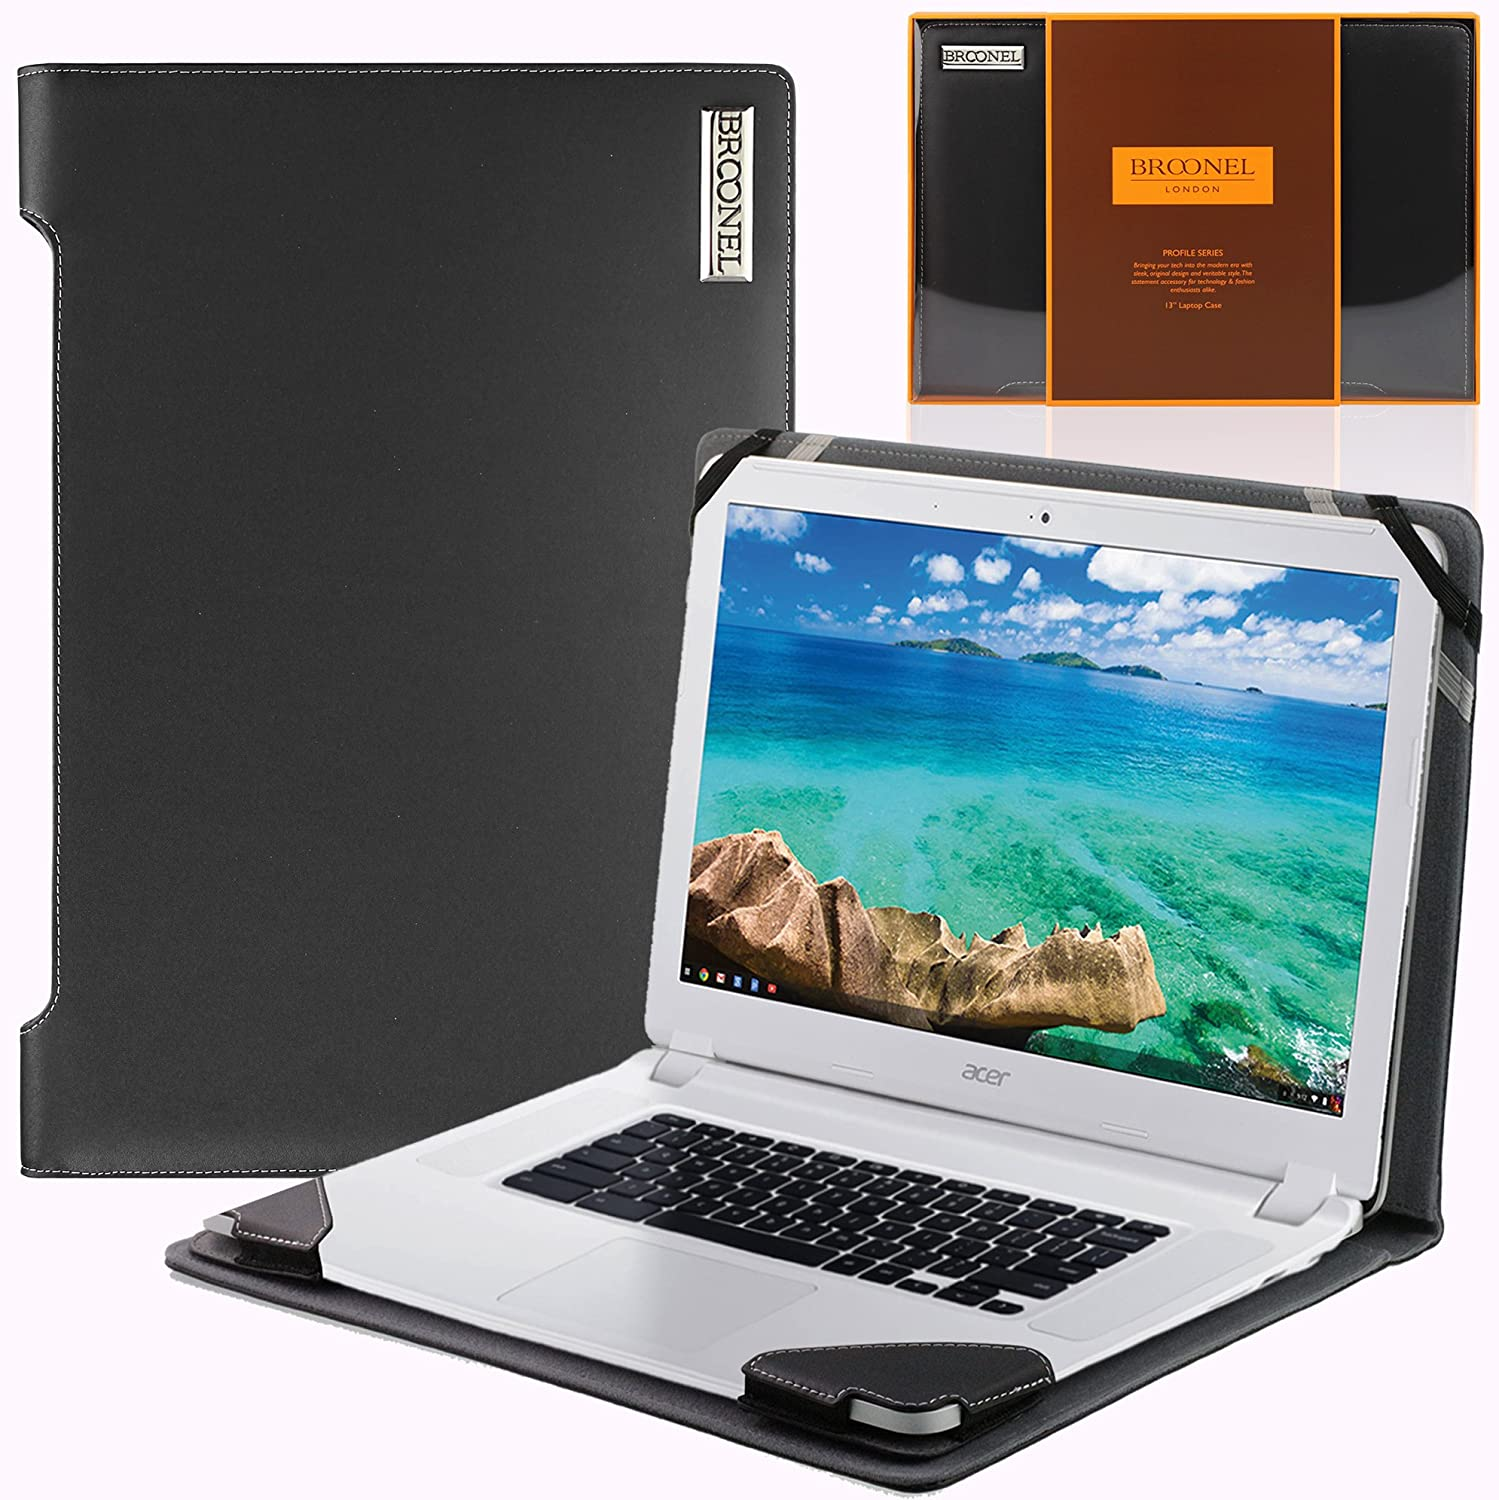 Broonel London - Profile Series - Black Vegan Leather Luxury Laptop Case Cover Sleeve Compatible with The Acer Chromebook CB5-571 15.6""